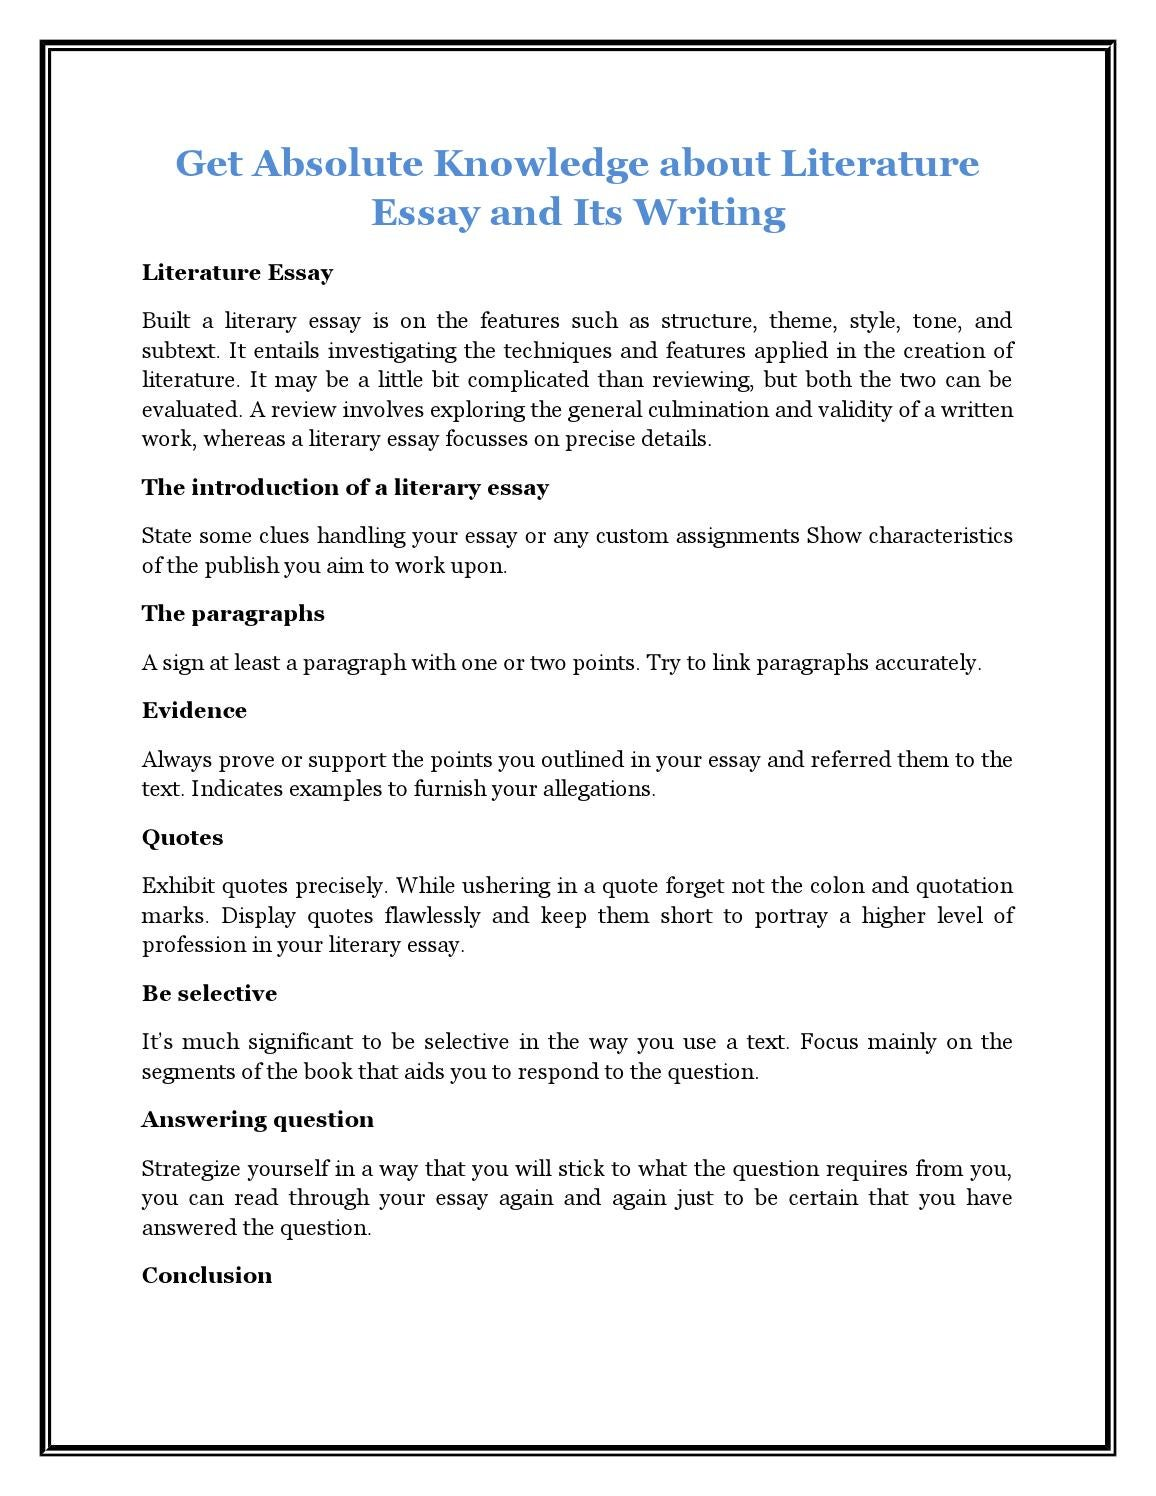 High School Essay Writing  Research Paper Essays also Essay On My College Life Get Absolute Knowledge About Literature Essay And Its  Academic Essay